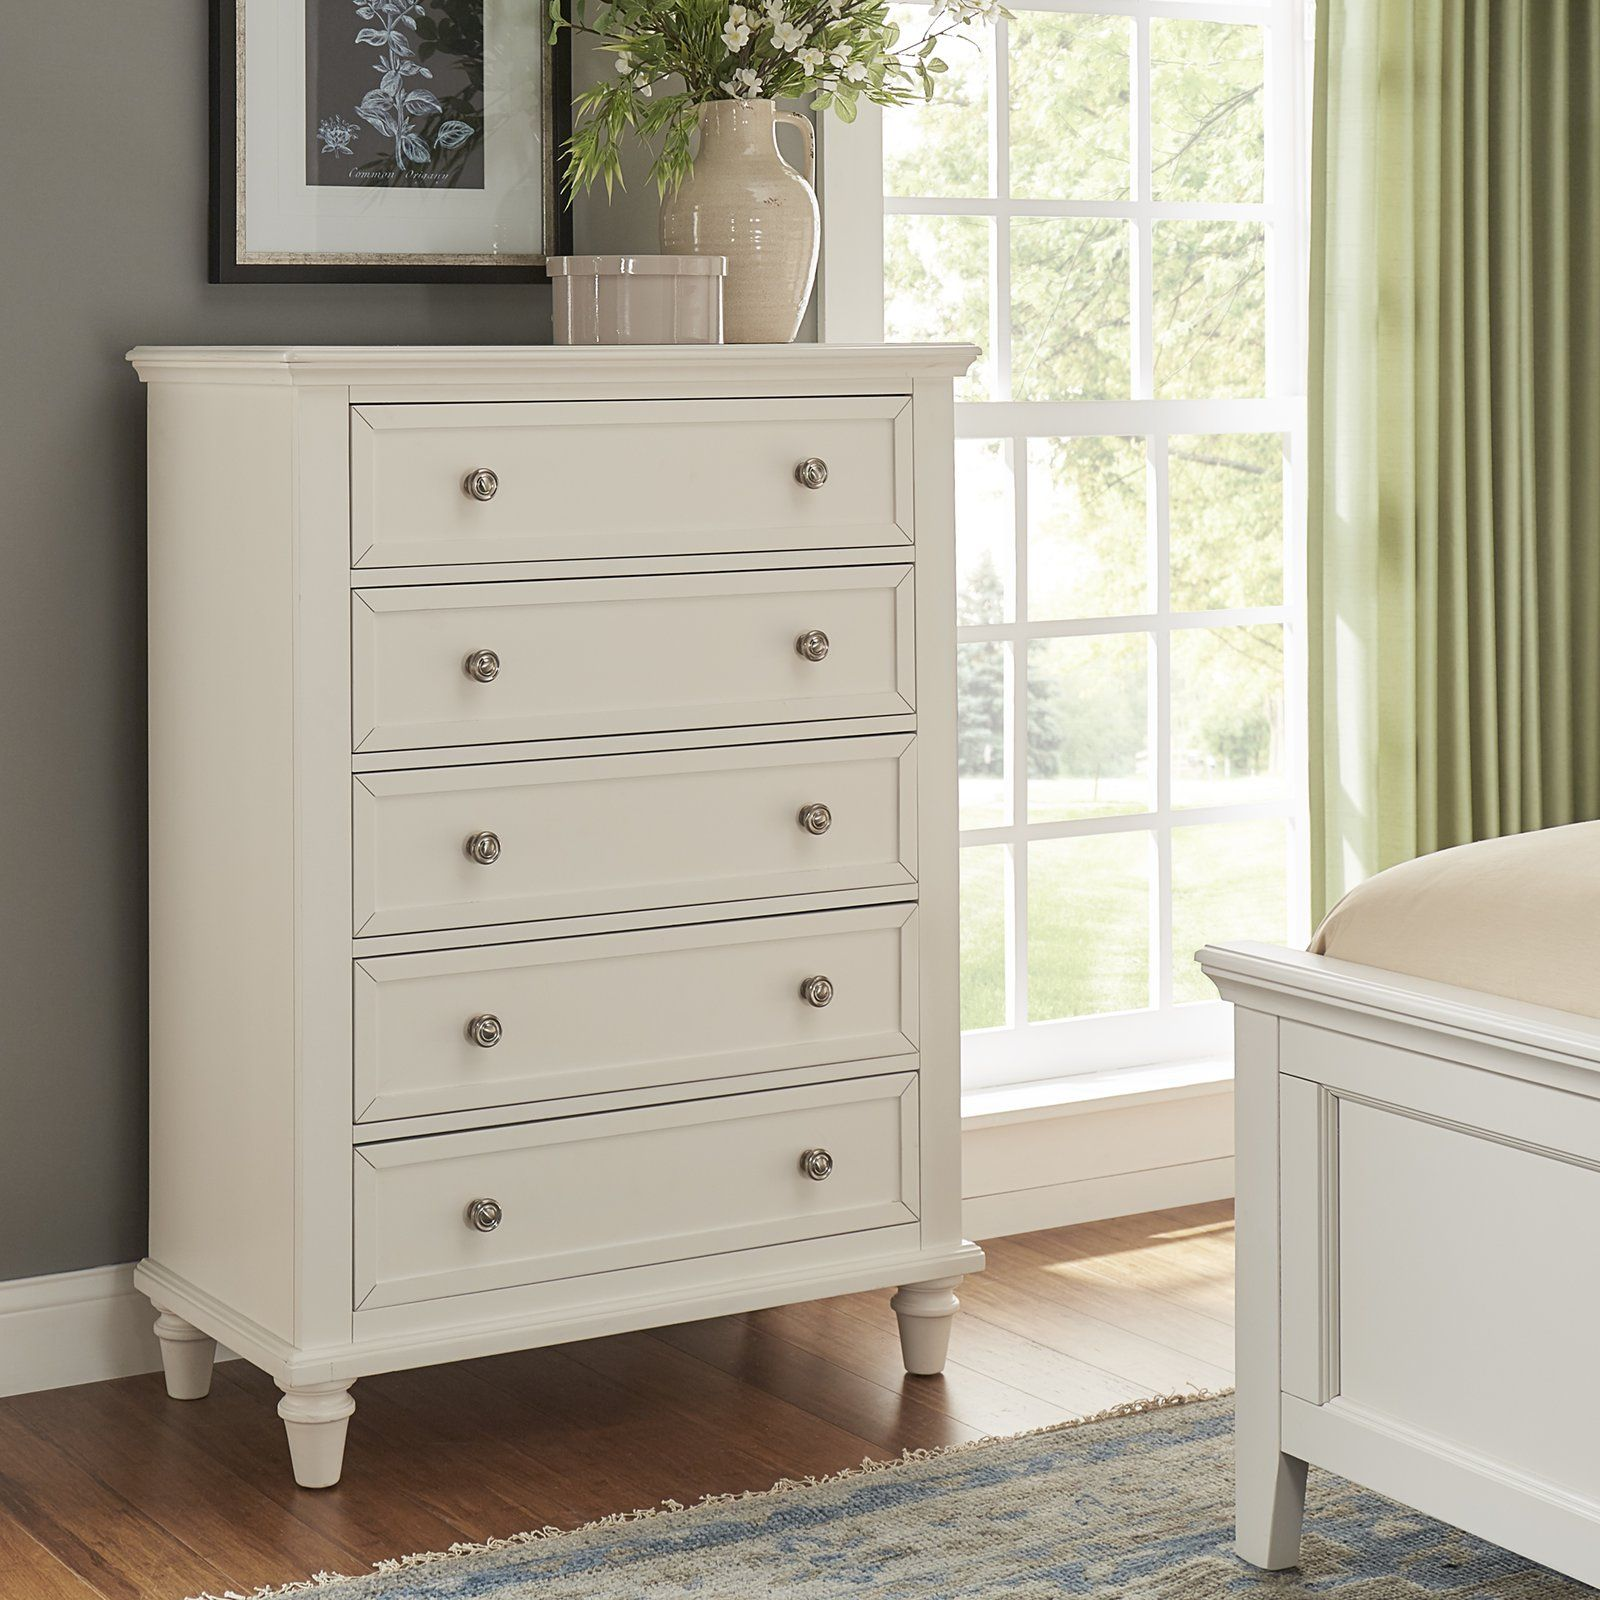 Rae 5 Drawer Chest Tall Dresser Decor